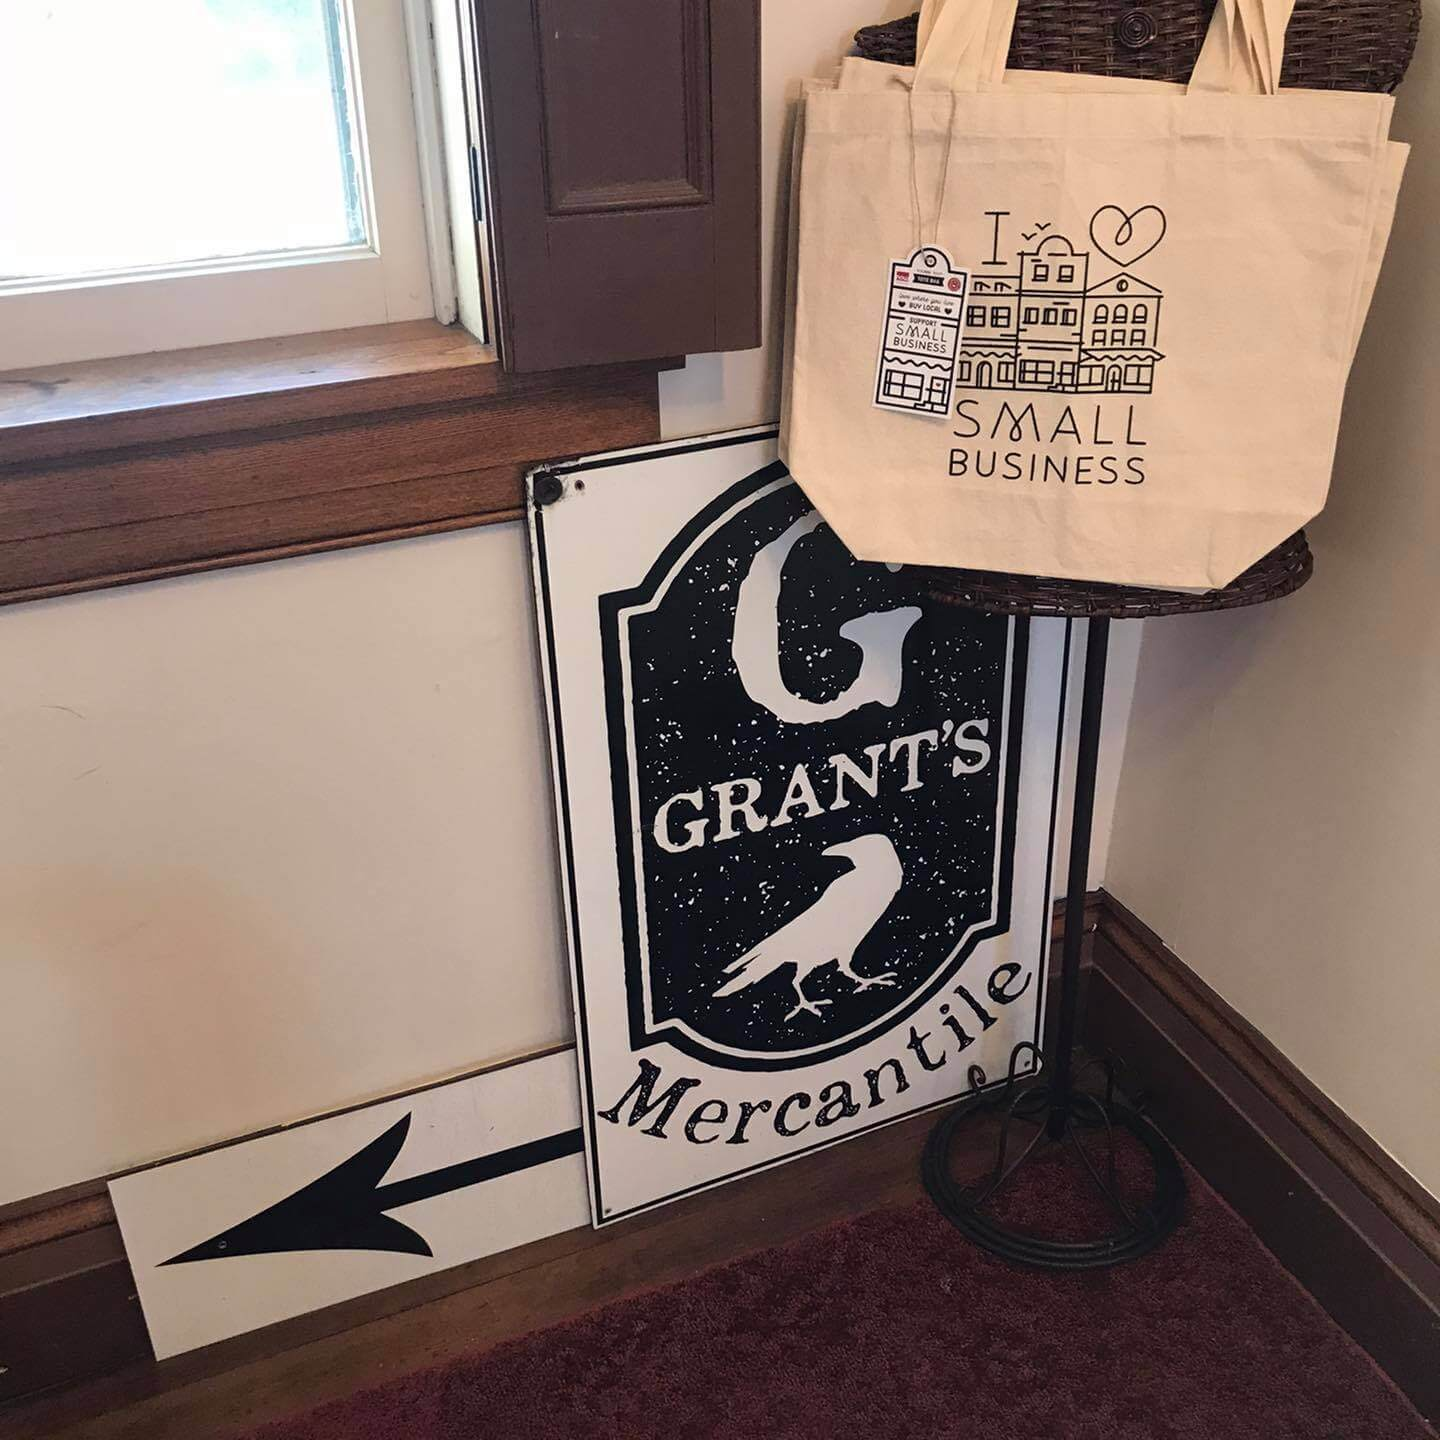 Little Crossing Pantry & Grant's Mercantile Pop-up Shop: Labor Day Weekend Schedule